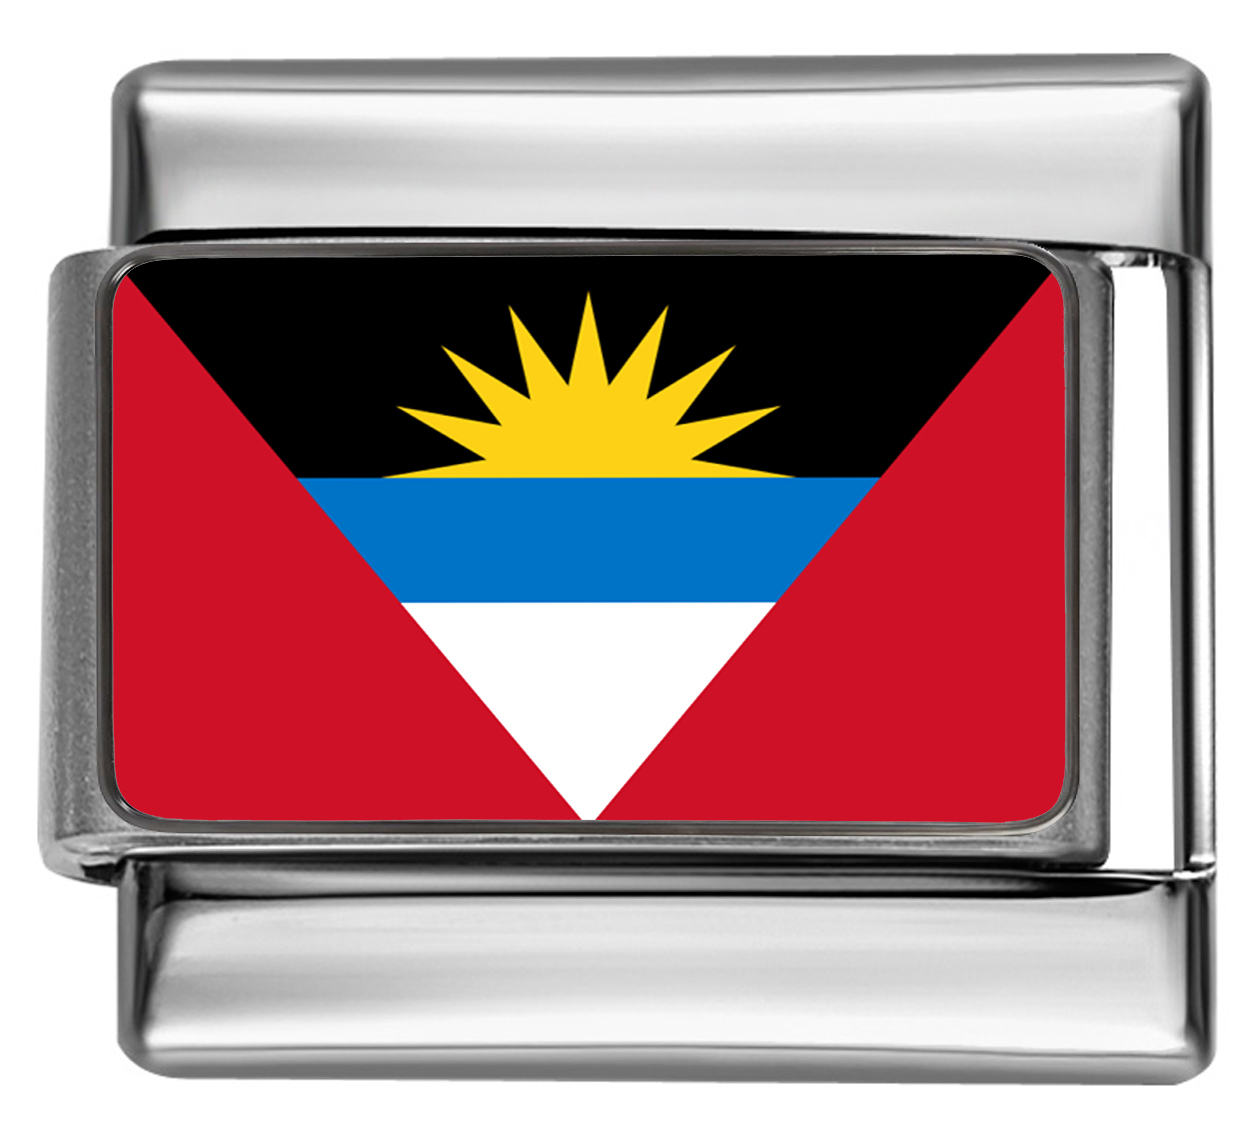 PC006-Antigua-Barbuda-Flag